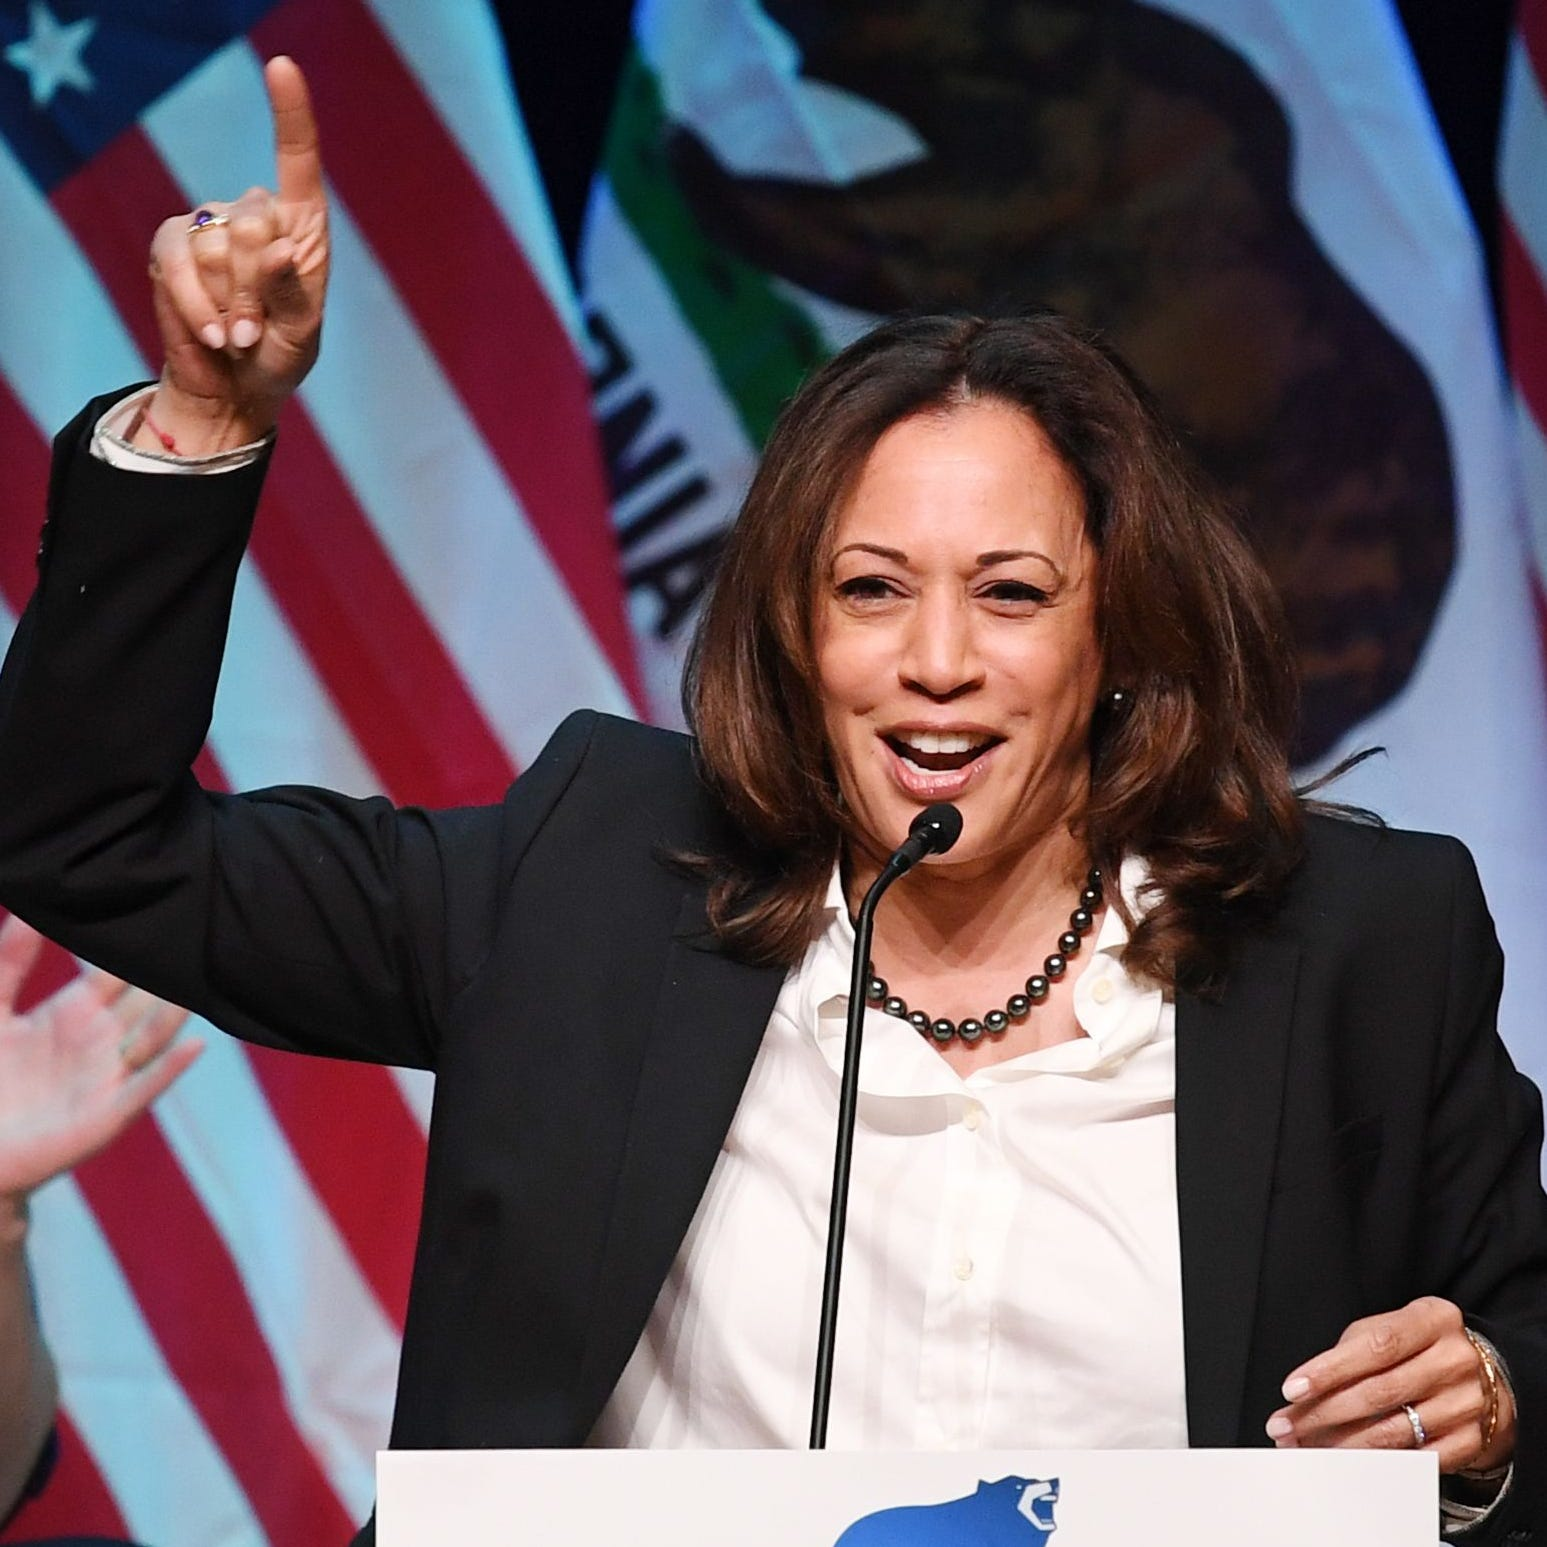 California Sen. Kamala Harris announces 2020 presidential bid on 'Good Morning America'